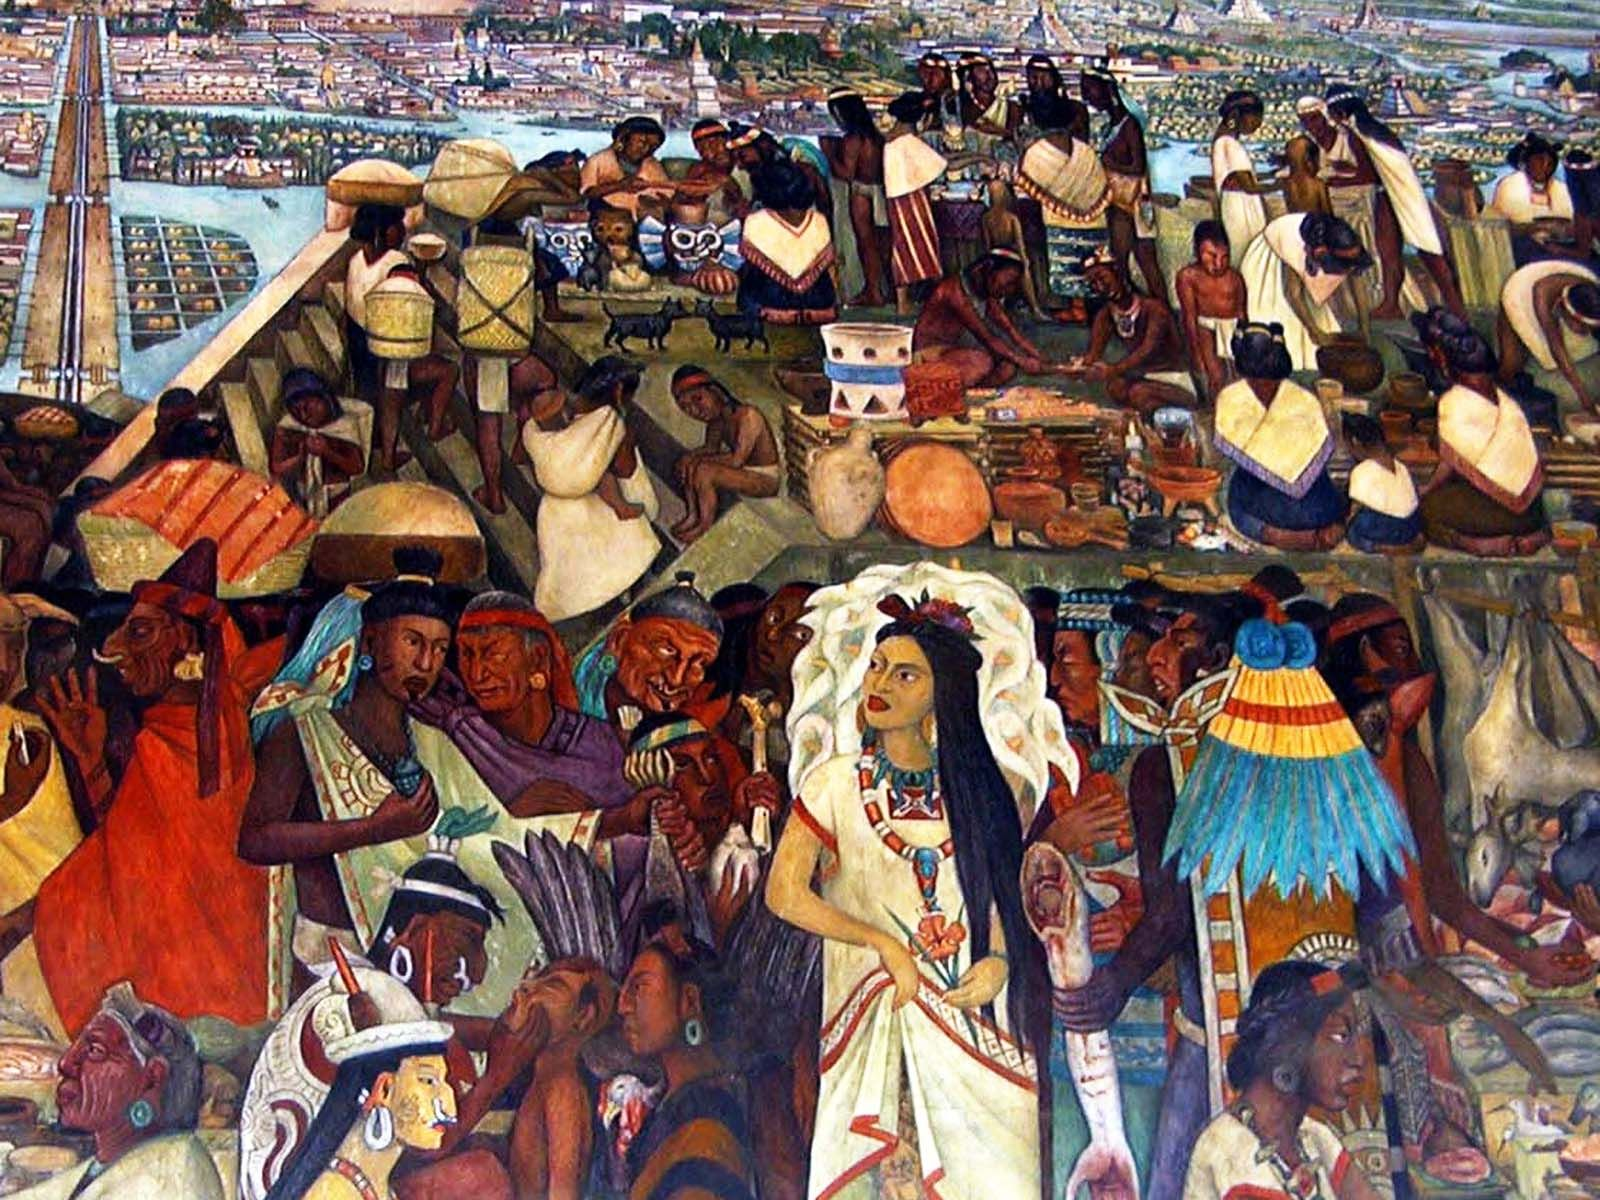 Diego de rivera mexico city art pinterest diego for Diego rivera day of the dead mural